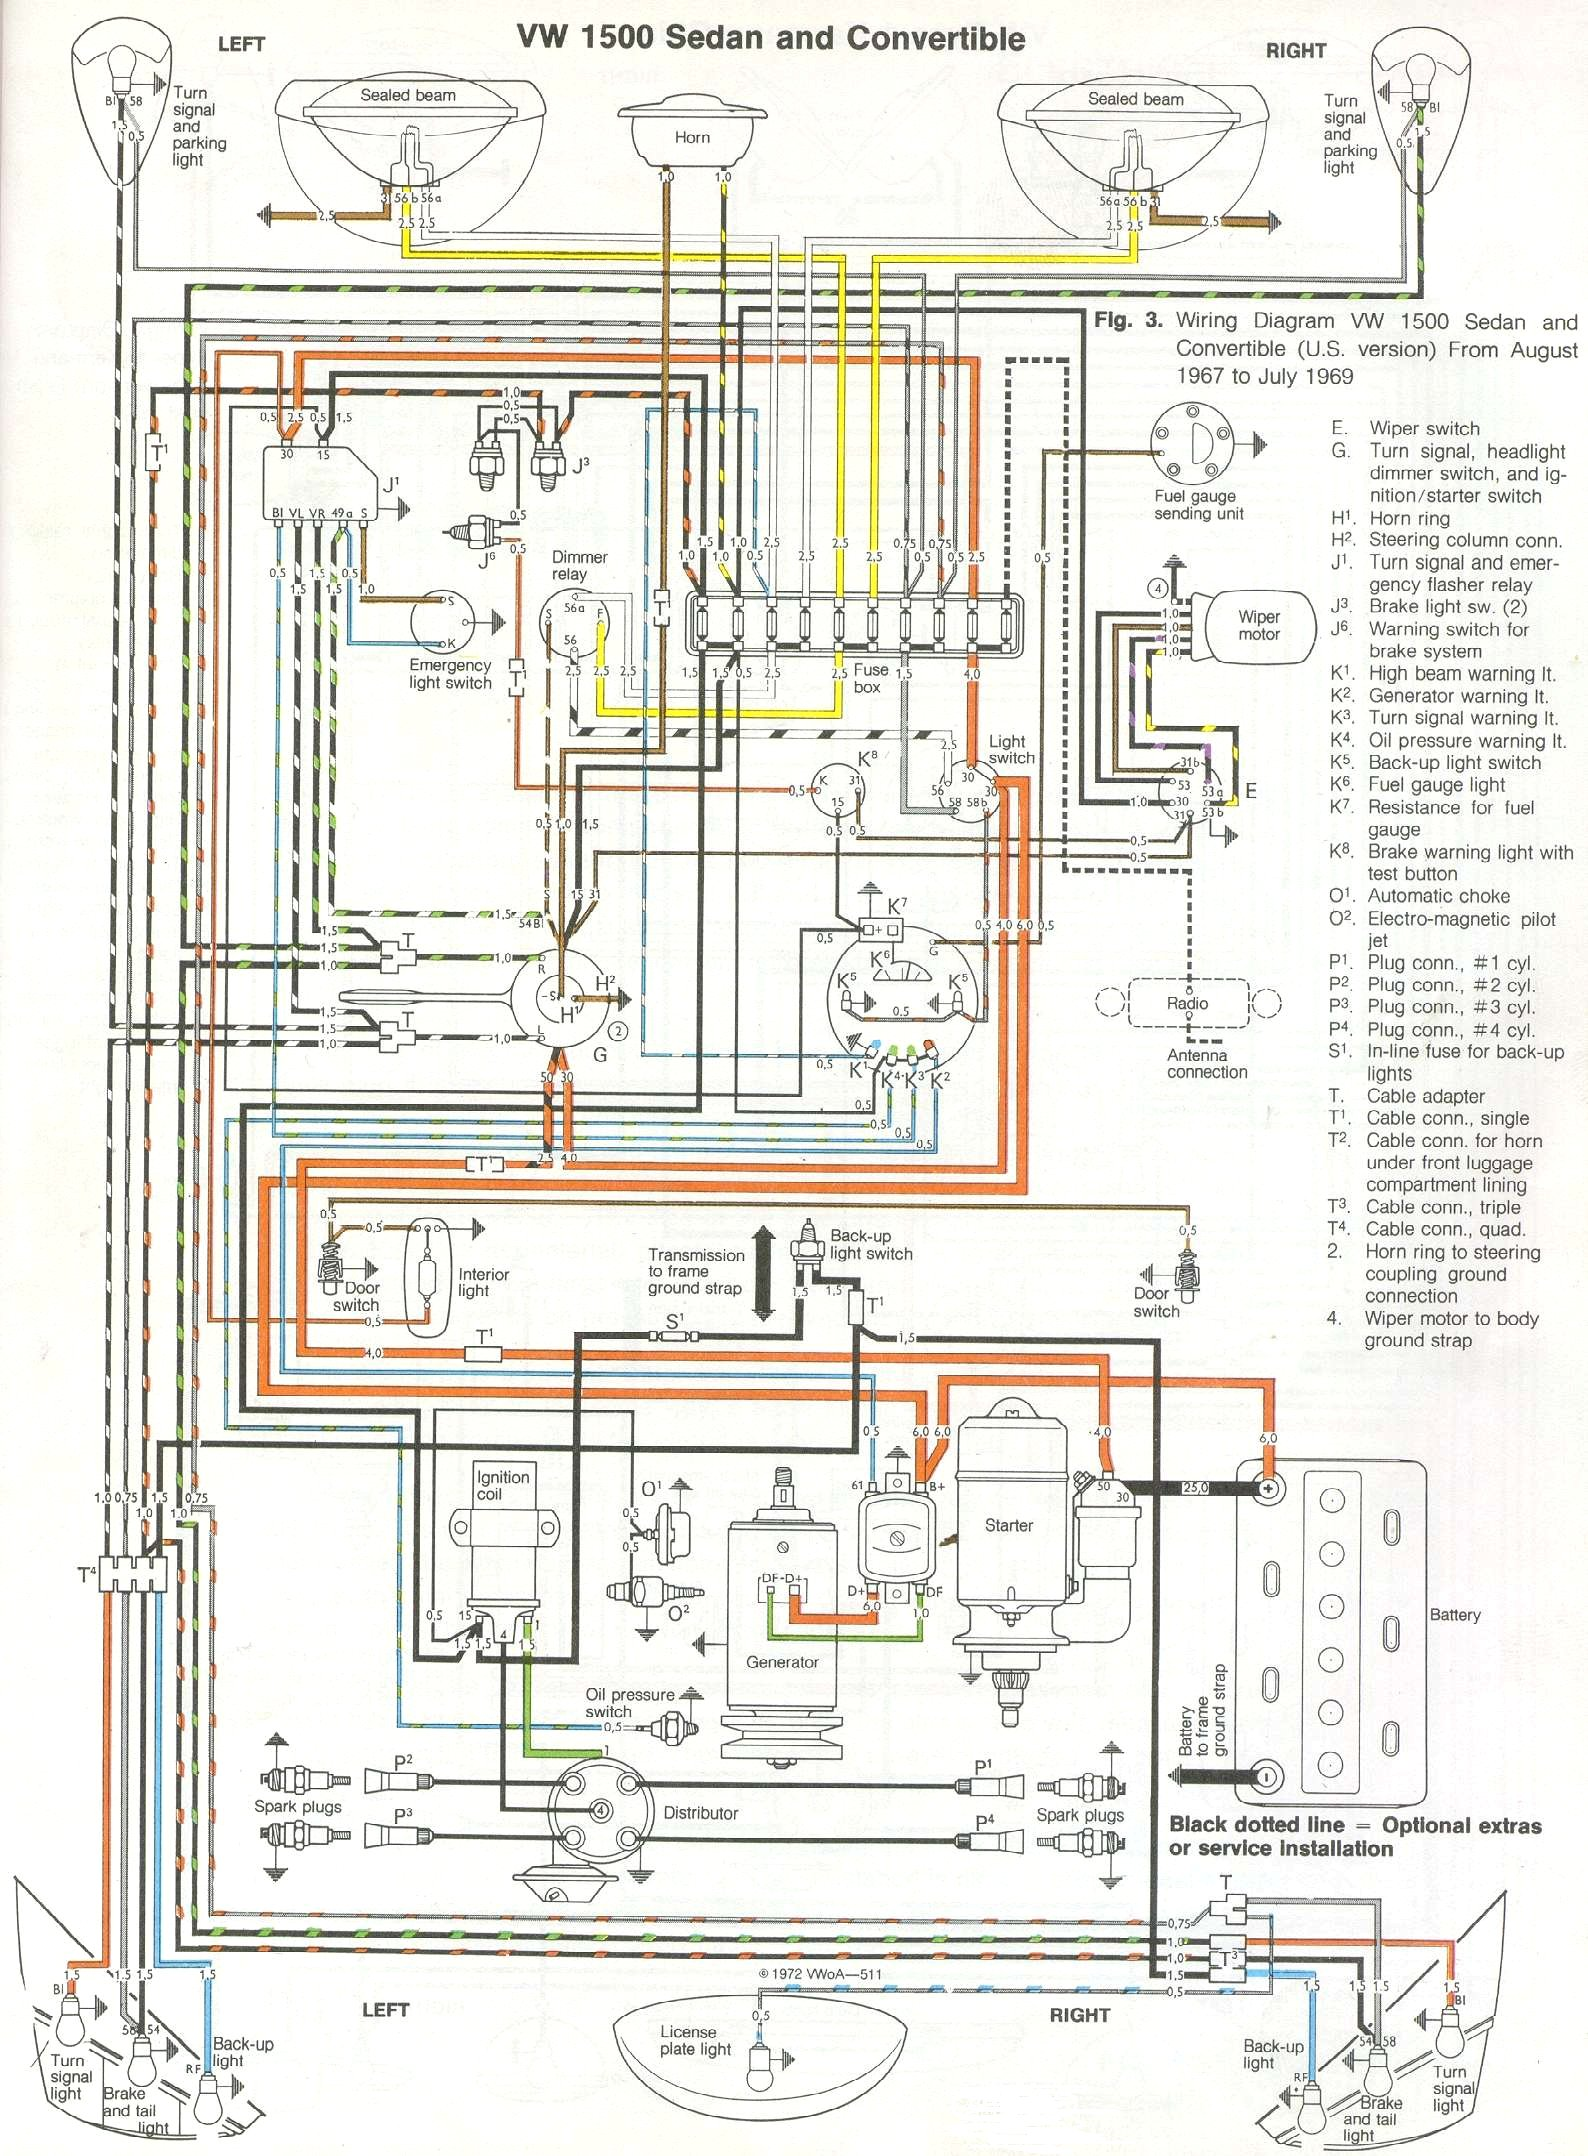 bug_6869 1969 71 beetle wiring diagram thegoldenbug com 1970 vw beetle wiring diagram at edmiracle.co